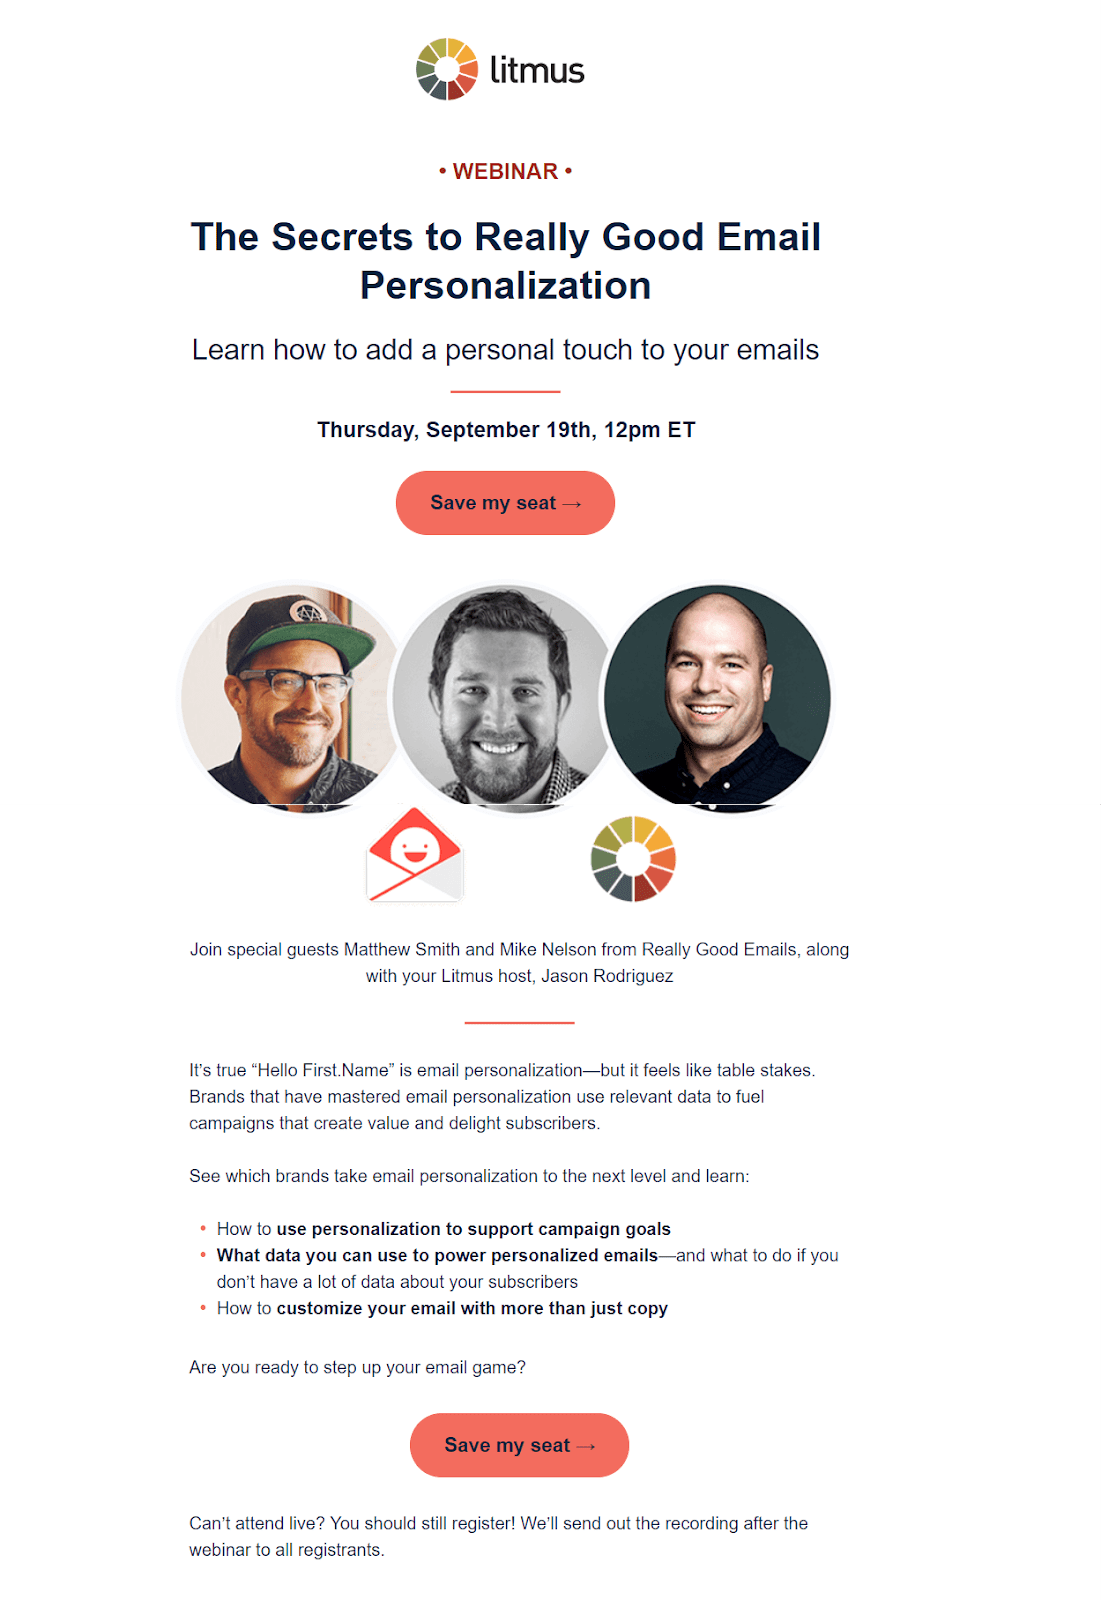 A webinar invitation email sent by Litmus